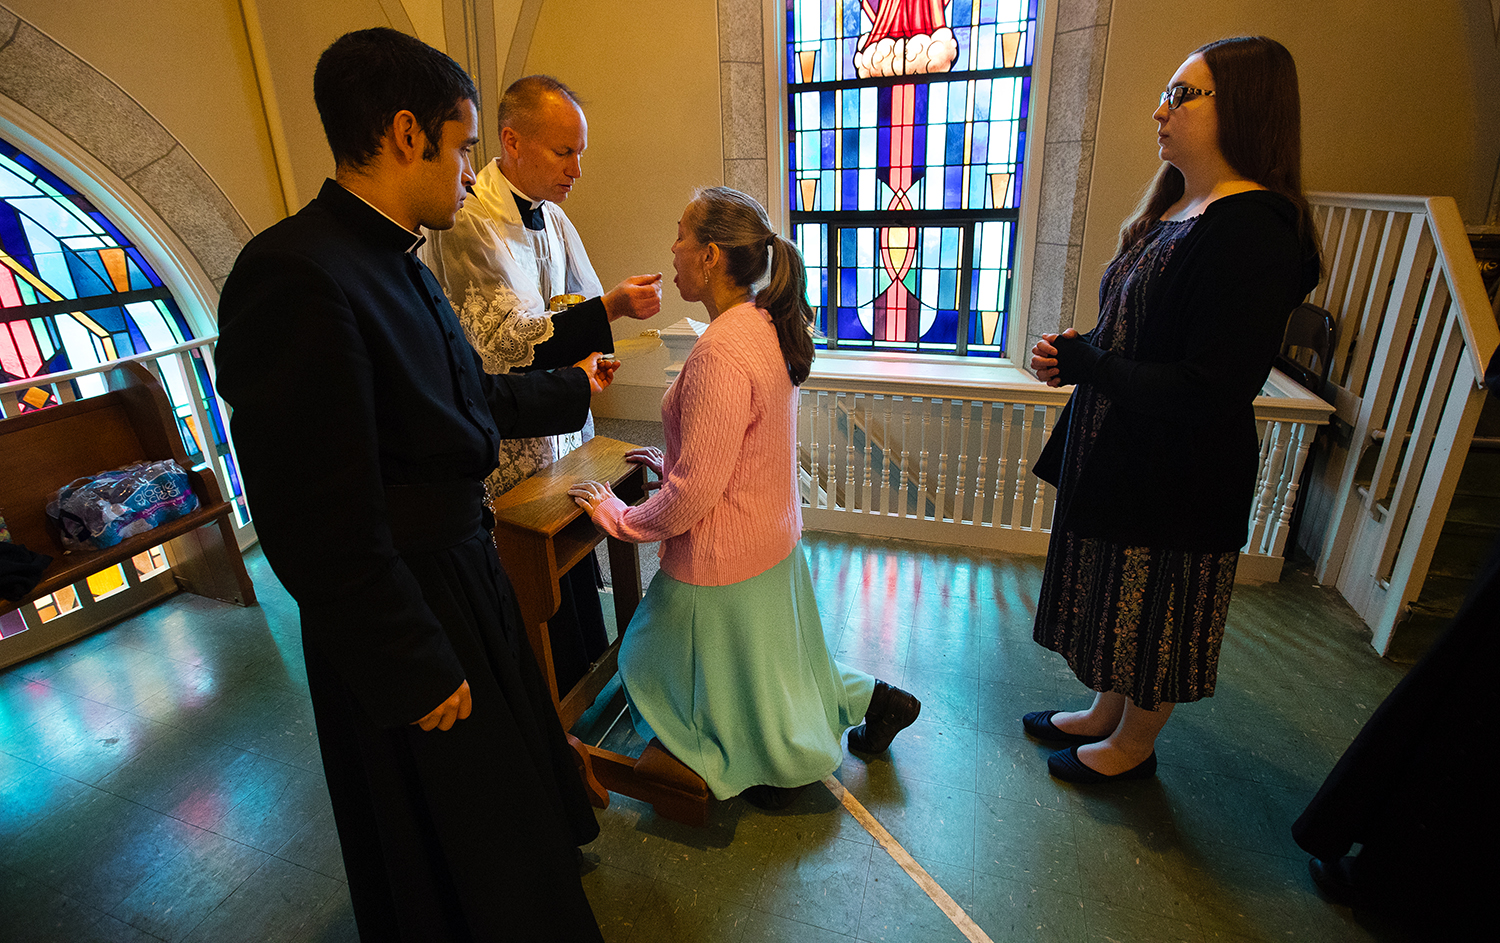 Betty Parquette receives The Eucharist from Pastor Fr. James Isaacson in the balcony of Sacred Heart Church during the Latin Mass on Easter Sunday April 1, 2018. [Ted Schurter/The State Journal-Register]